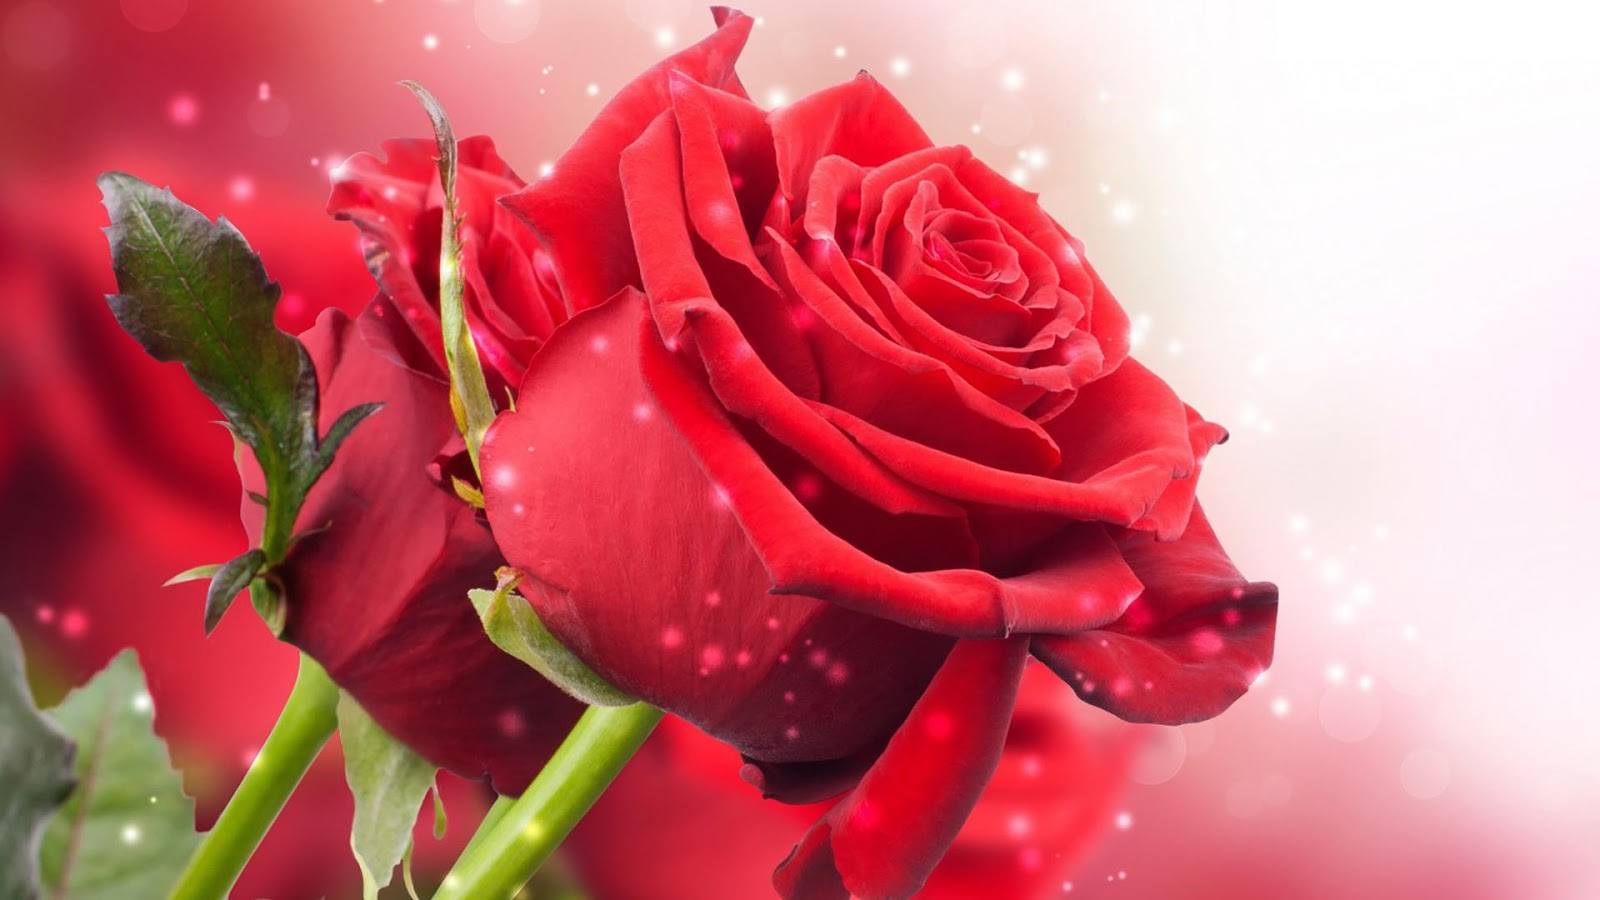 Red Rose Live Wallpaper   Android Apps on Google Play 1600x900